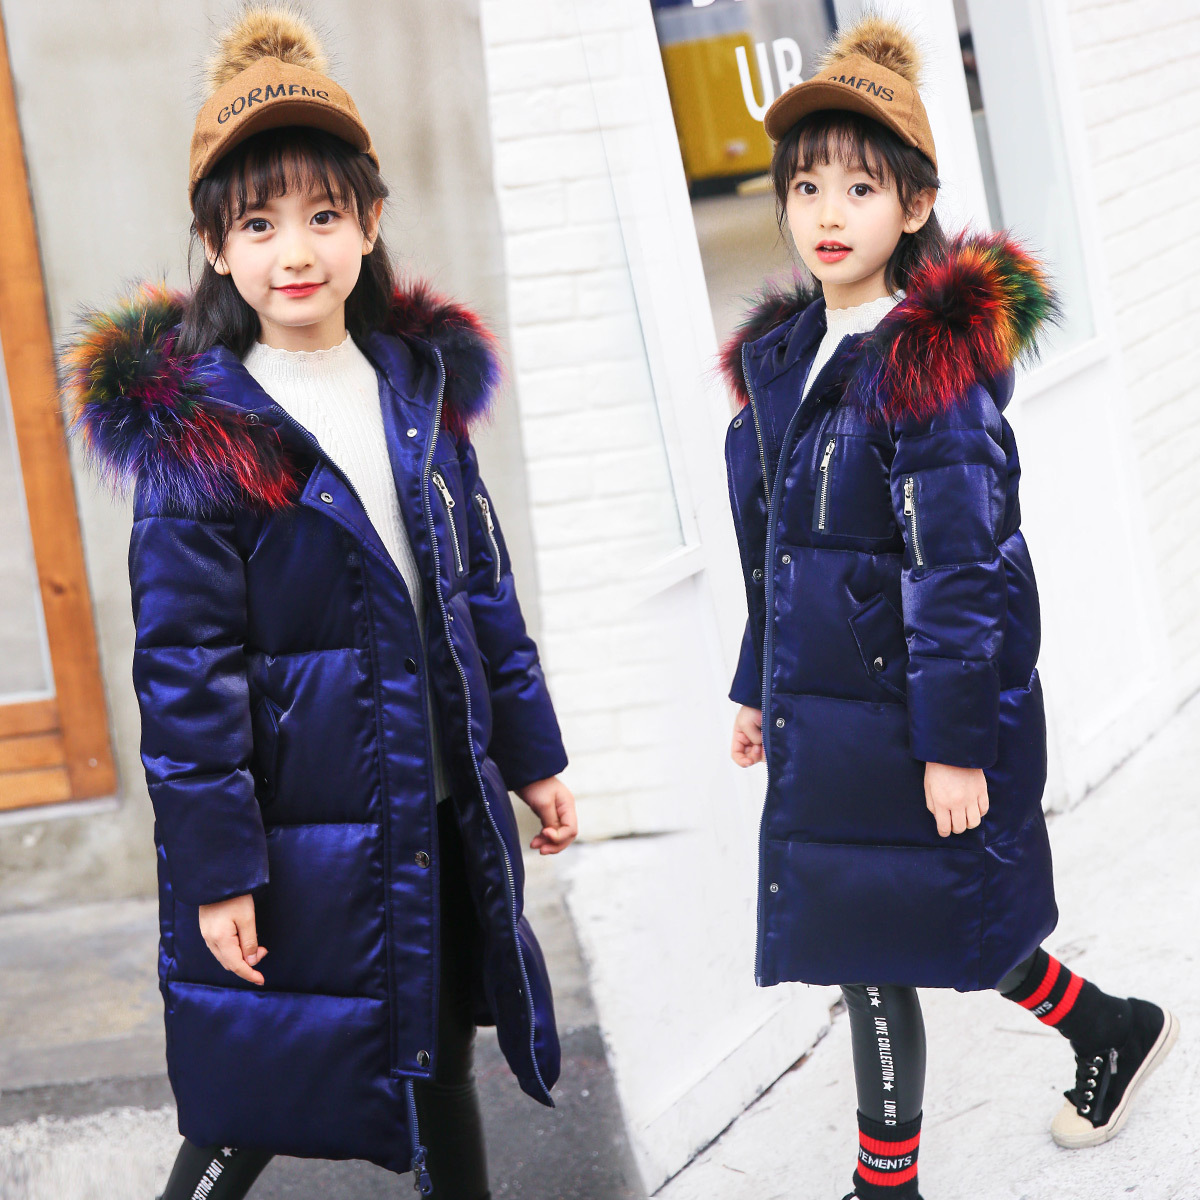 Winter Jacket Teenager Girl Coat Fashion Hooded Colorful Fur Kids 5 7 9 10 11 12 13 14 Years Child Clothes Thick Long Outerwear girl long korean tide thick warm down jacket winter for size 6 7 8 9 10 11 12 13 14 years child new black blue green outerwear